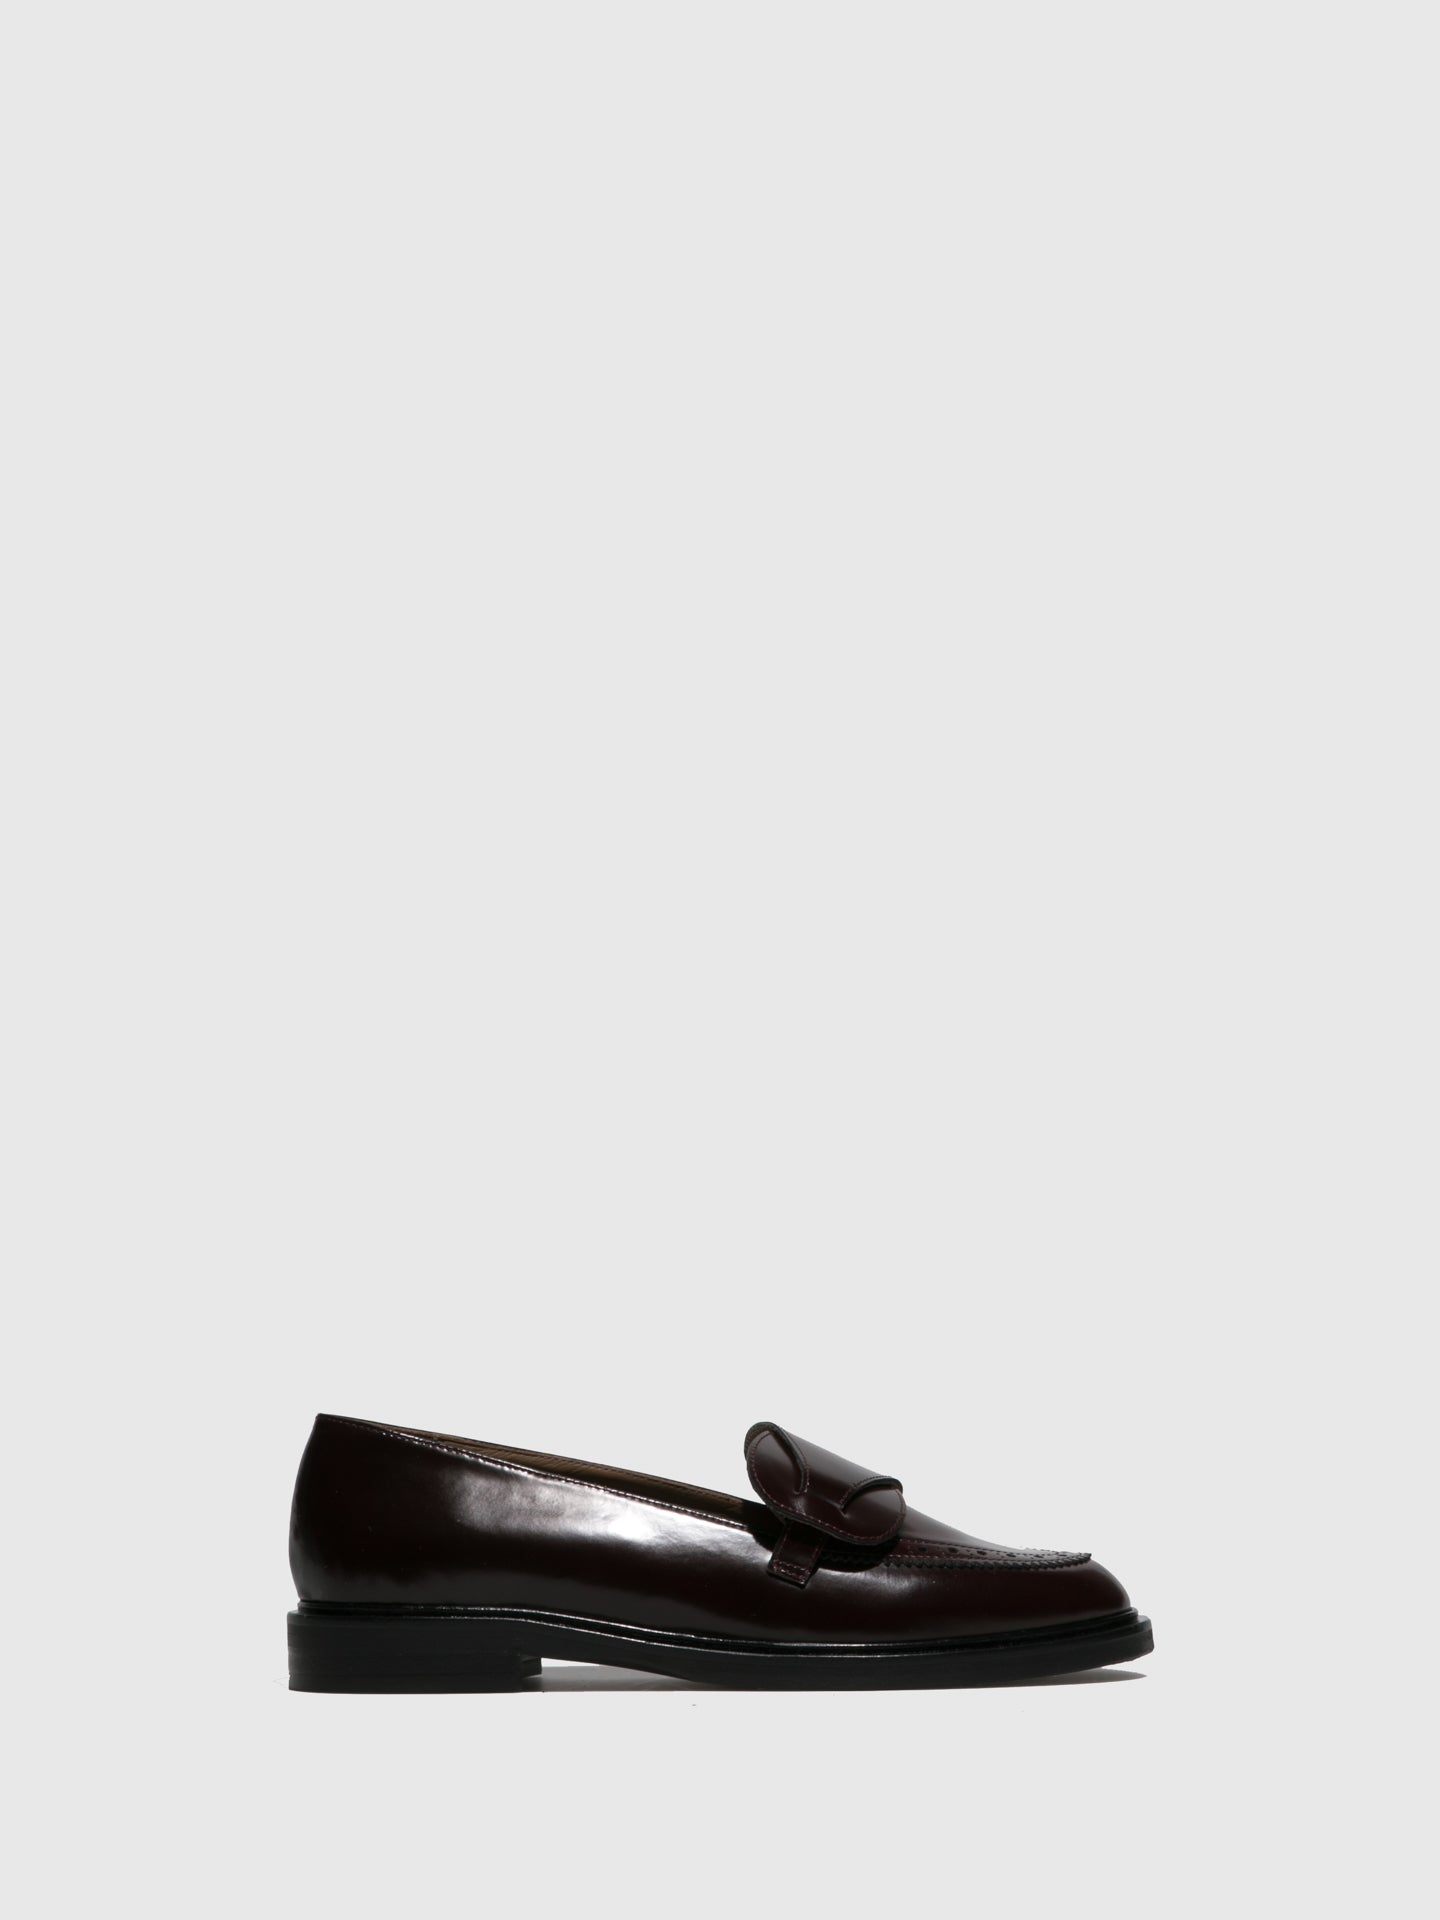 JJ Heitor DarkRed Loafers Shoes